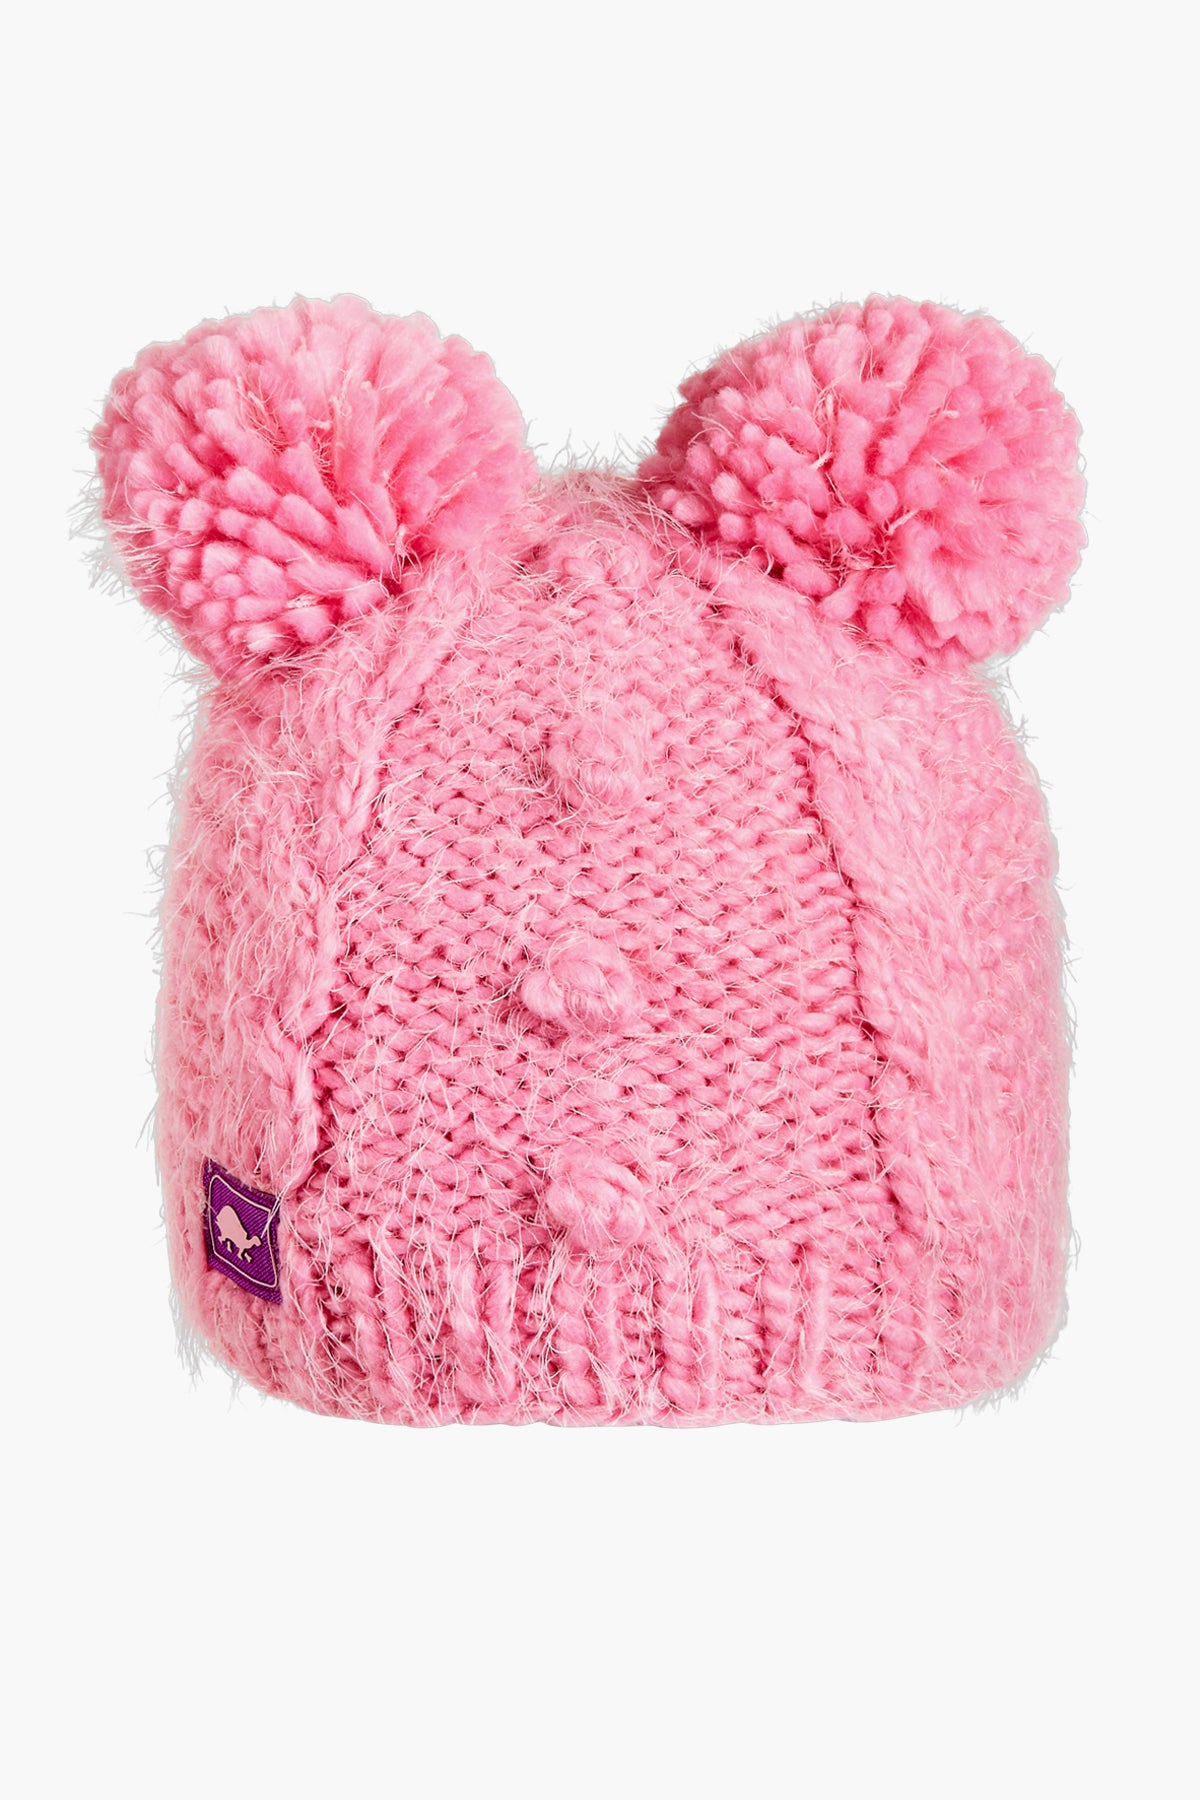 Turtle Fur Fluff Balls Pom Pom Hat - Bubble Gum